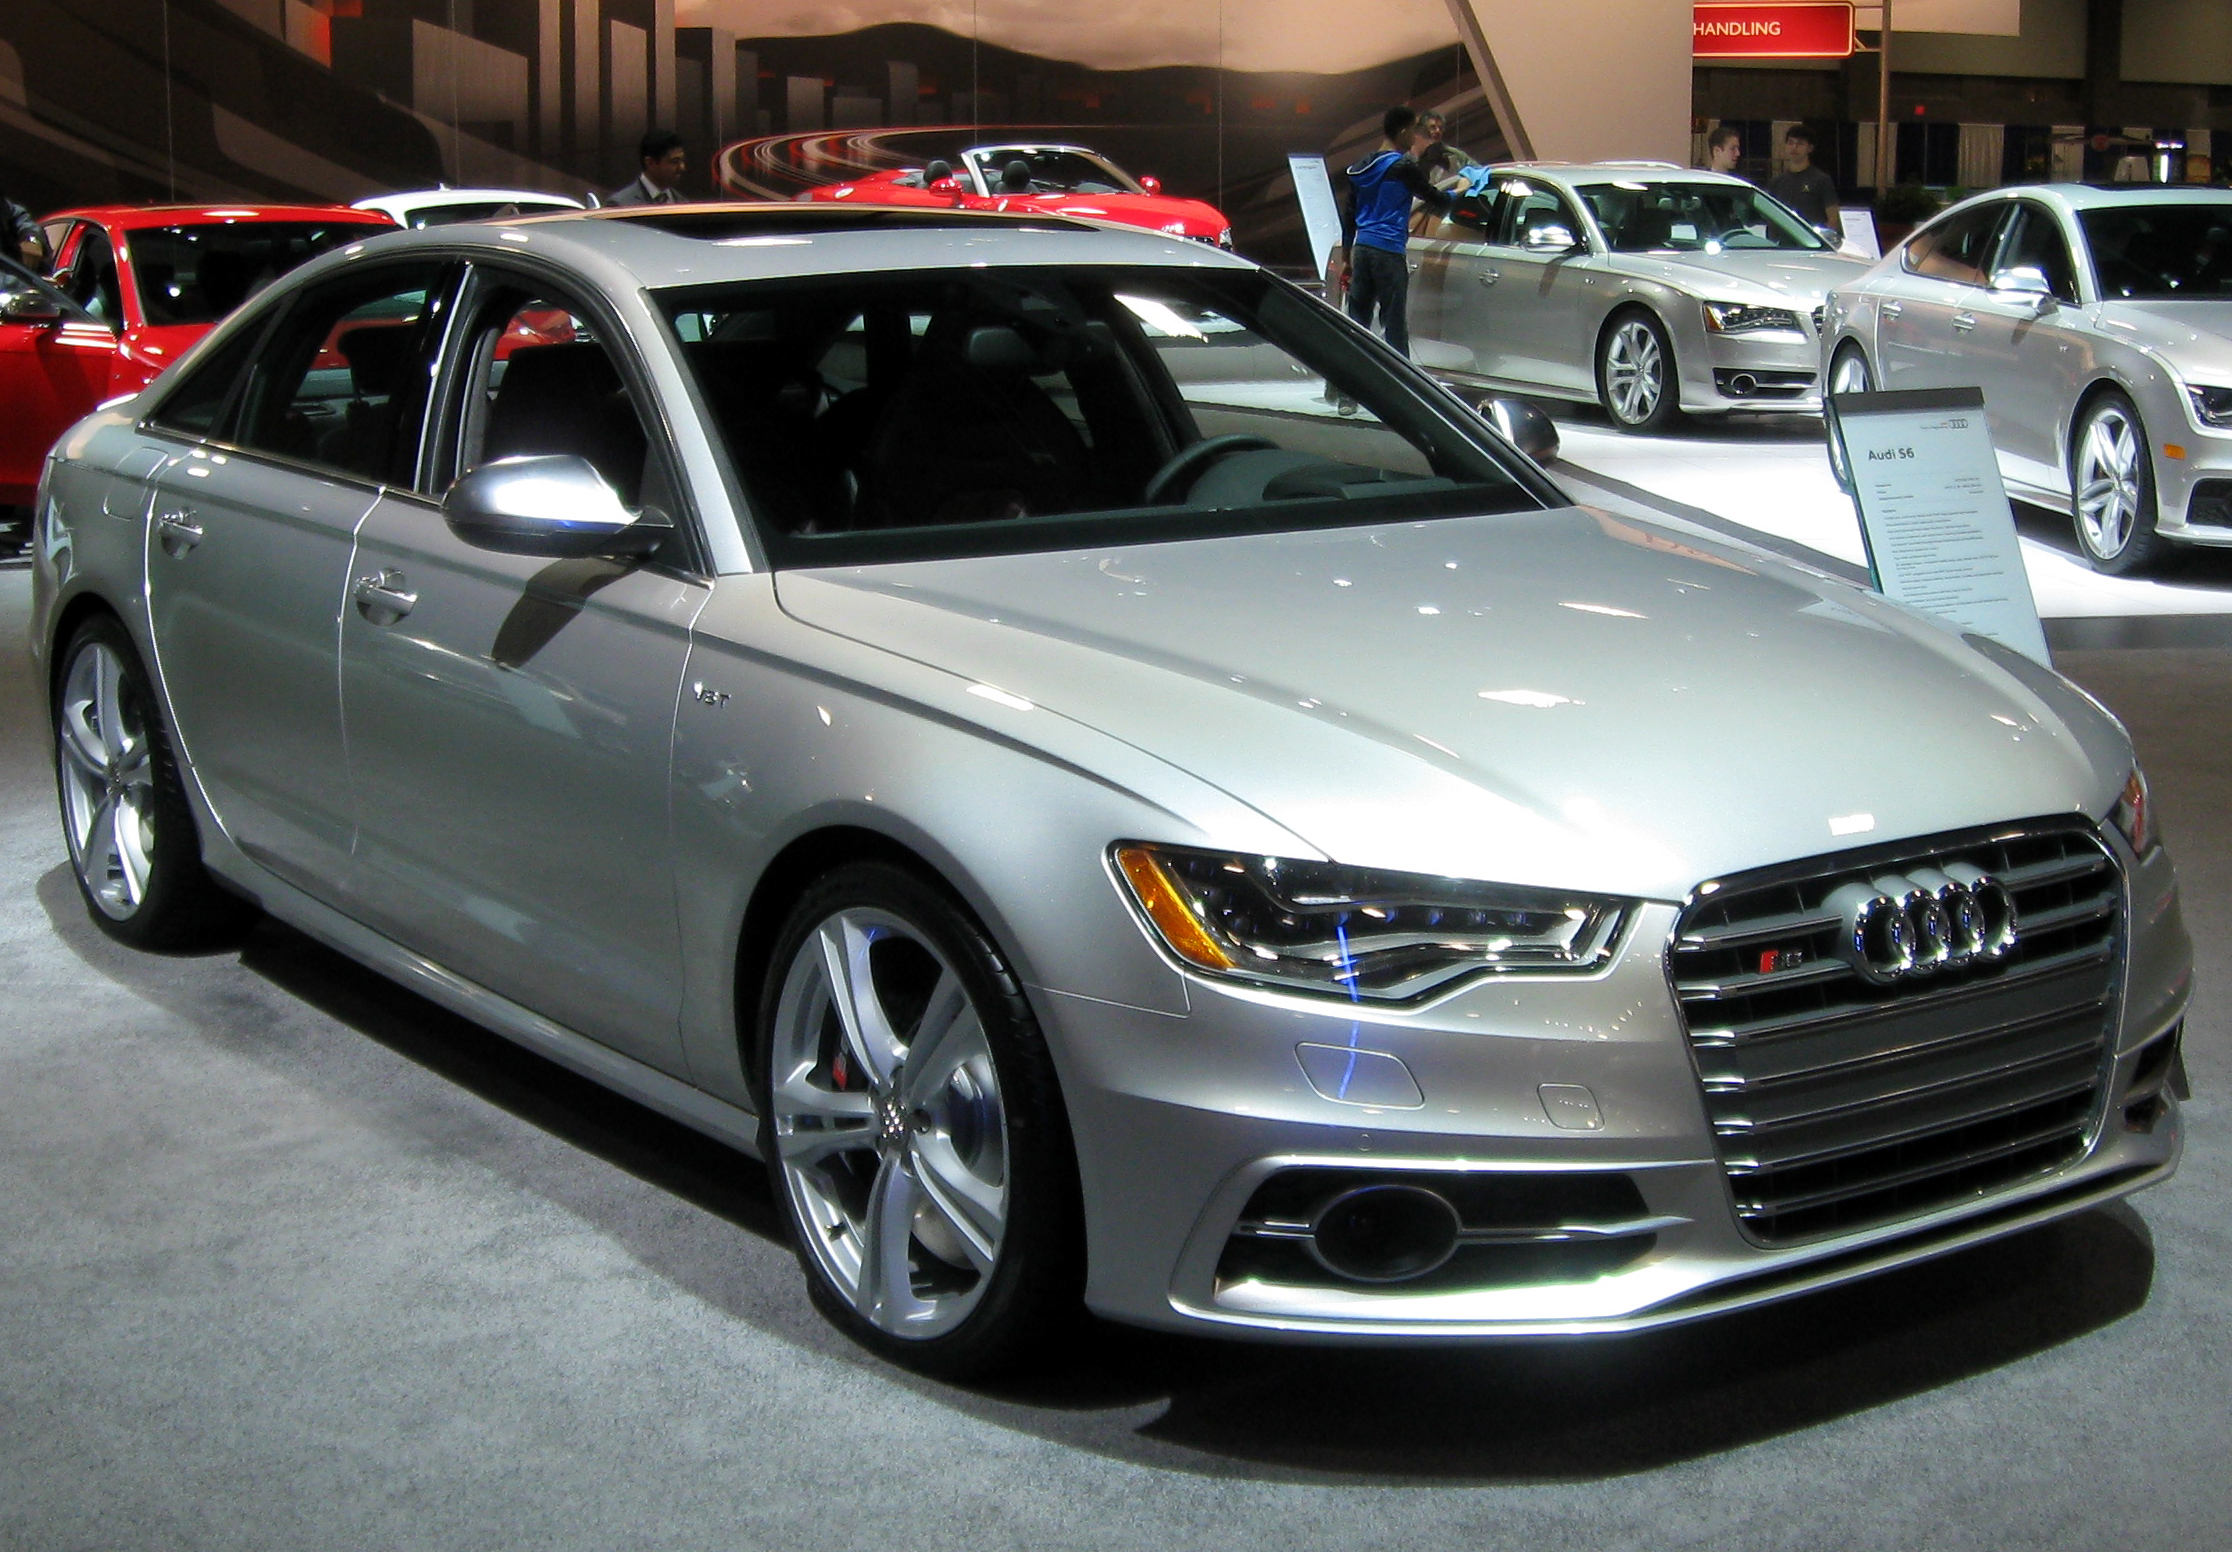 2013 audi a6 c7 pictures information and specs auto. Black Bedroom Furniture Sets. Home Design Ideas